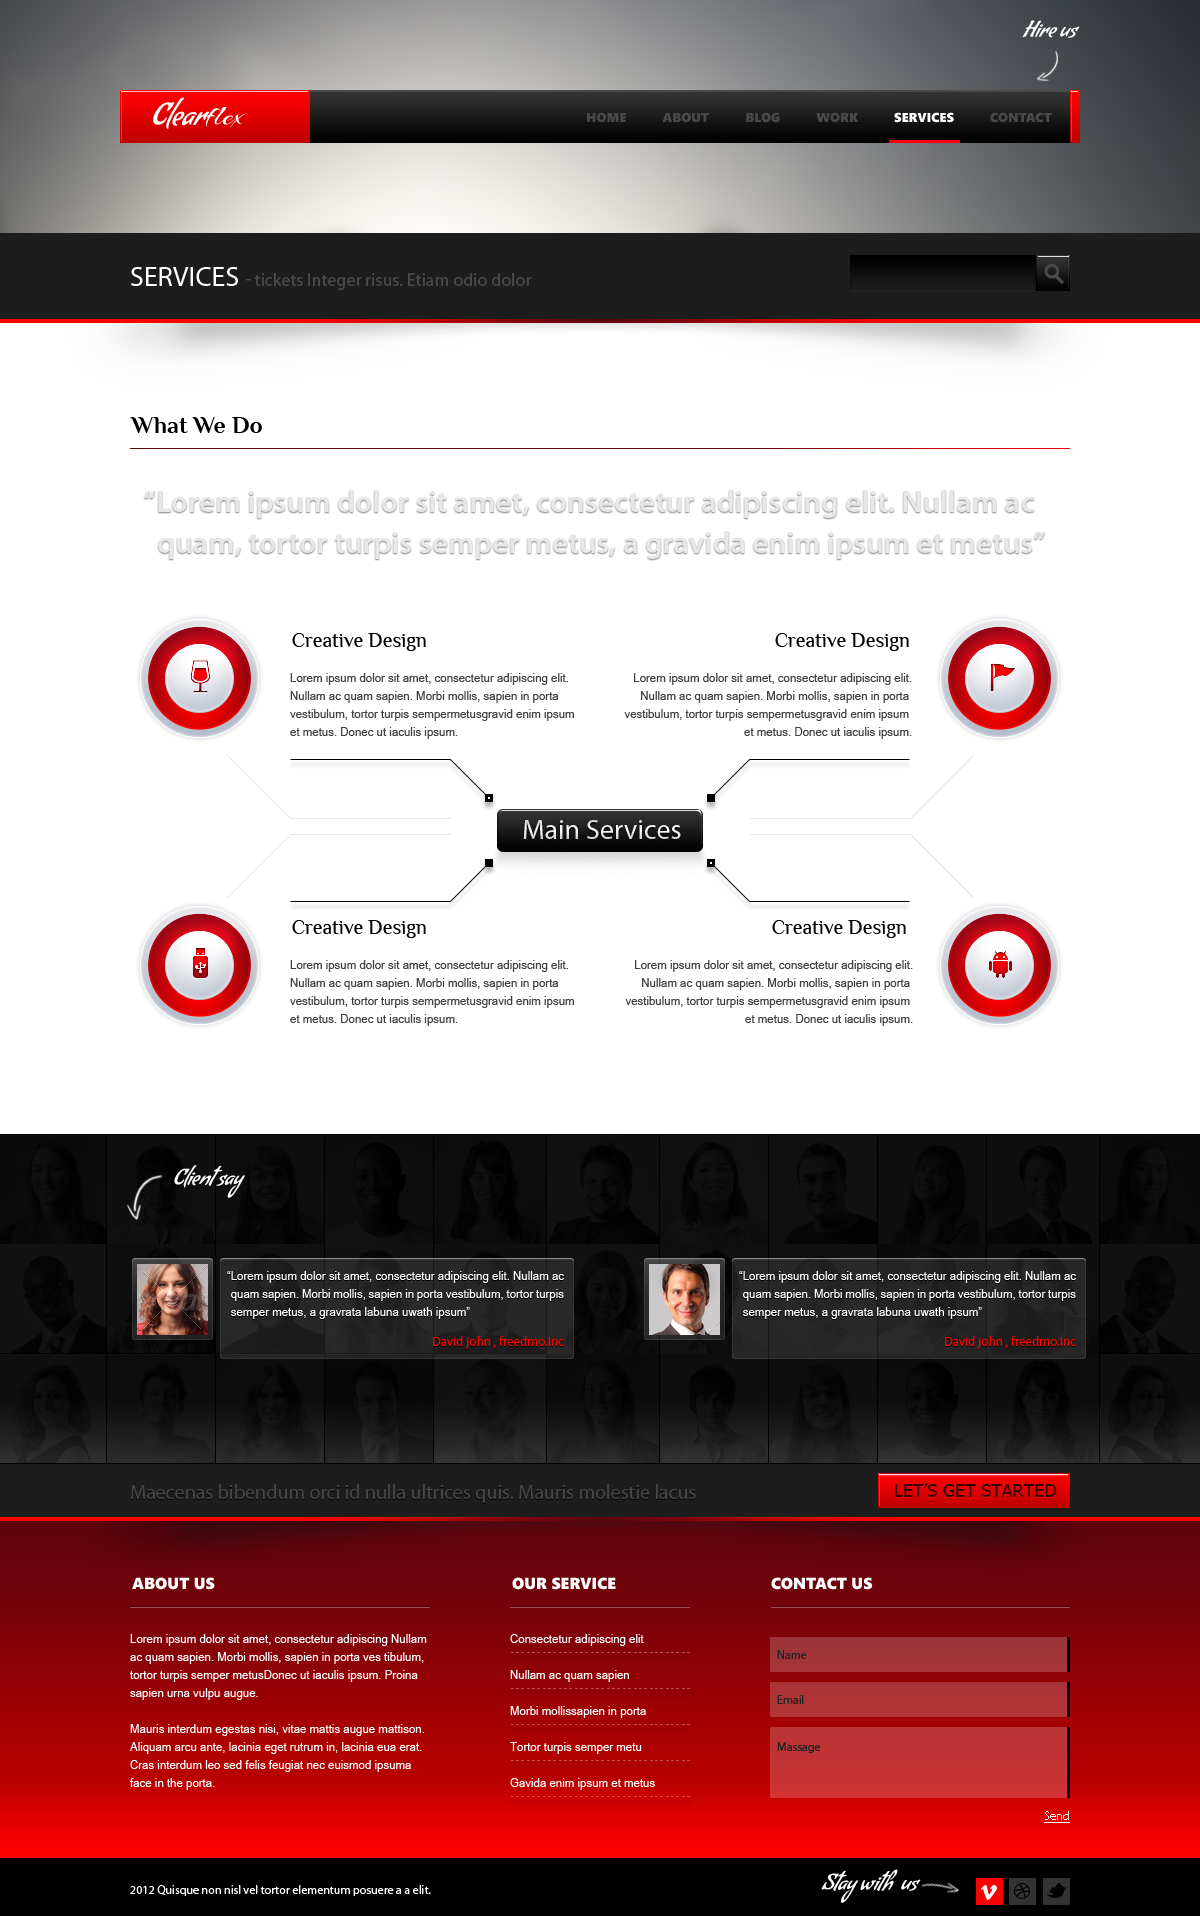 Clearflex PSD Templates - 10_Service page